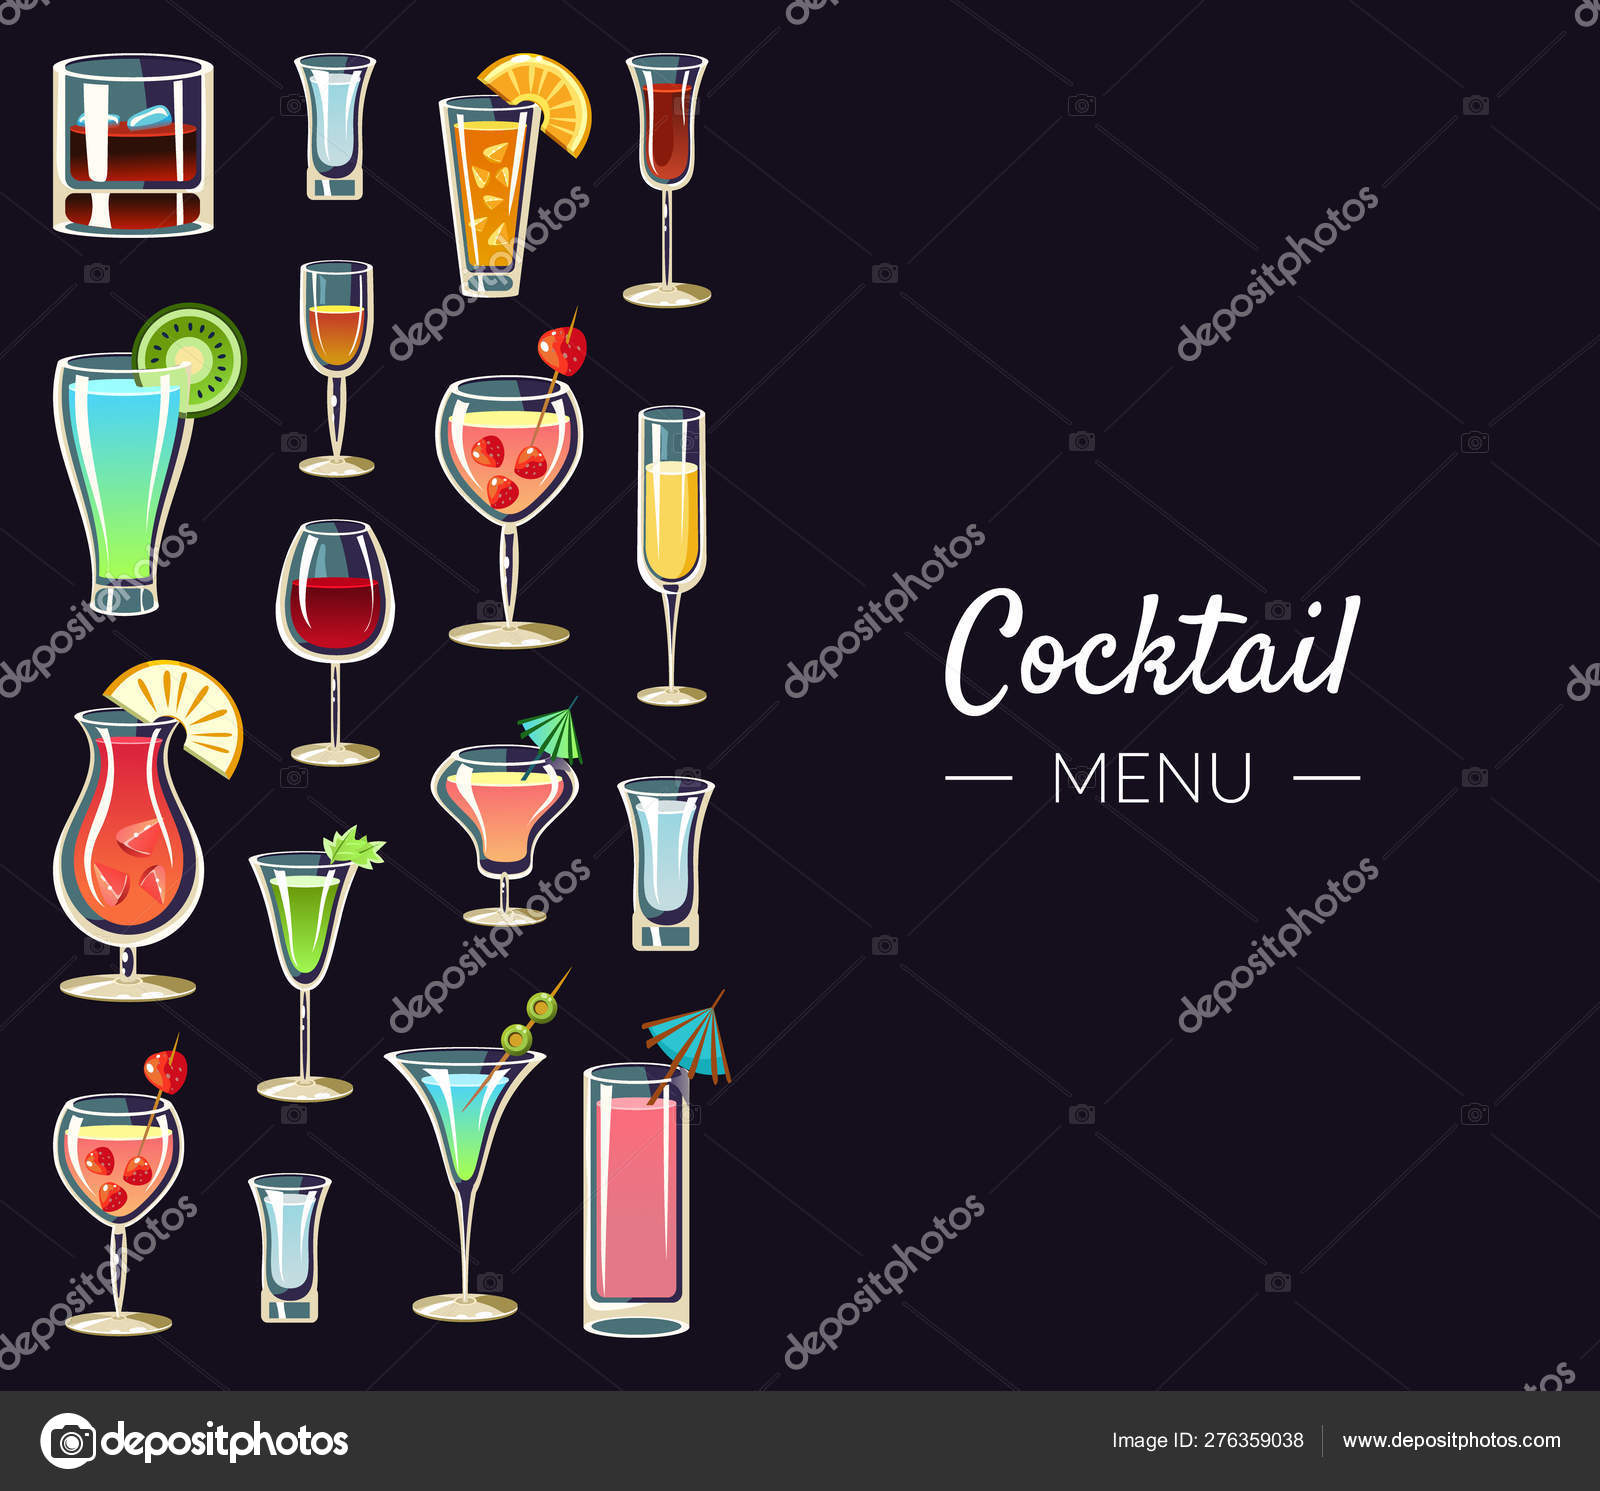 Cocktail Menu Banner Template Alcoholic Beverages Bar